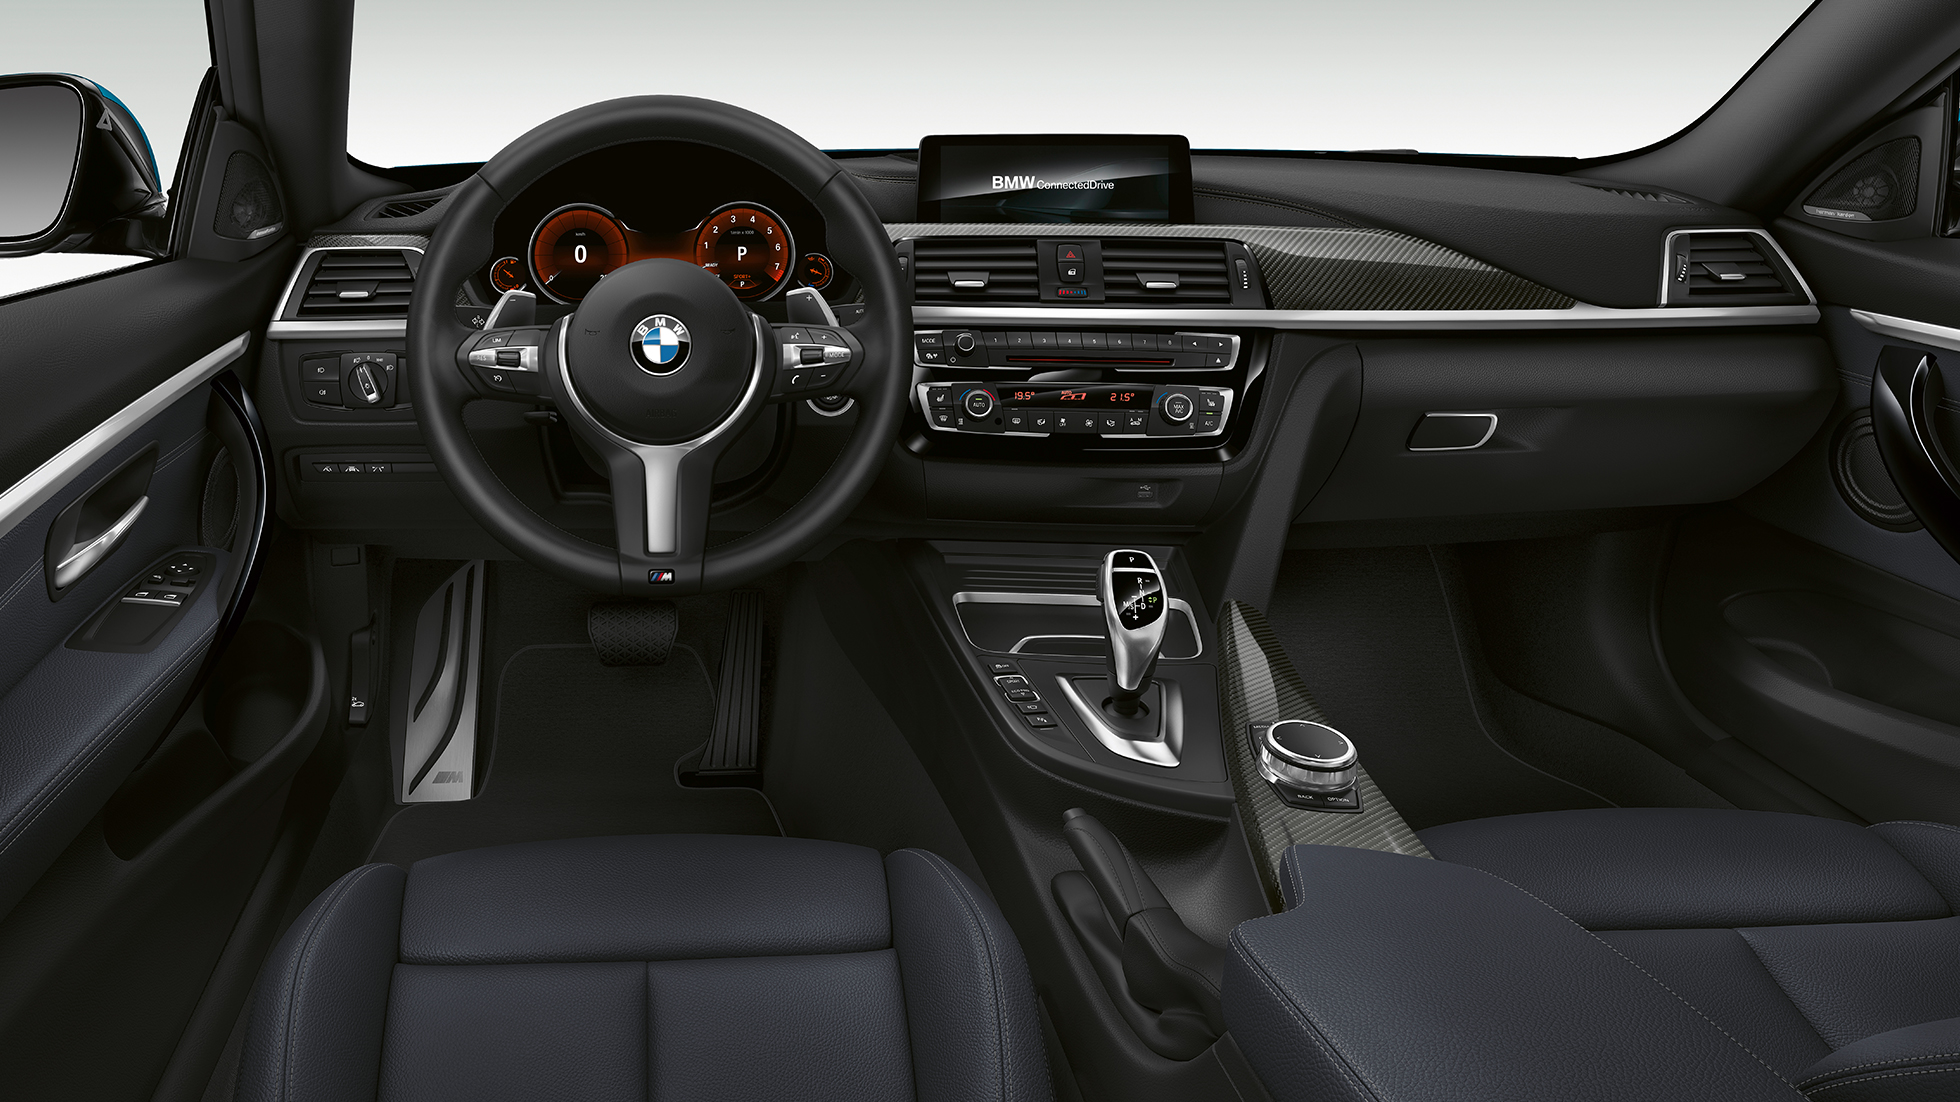 BMW 4 Series Coupé, Model M Sport cockpit